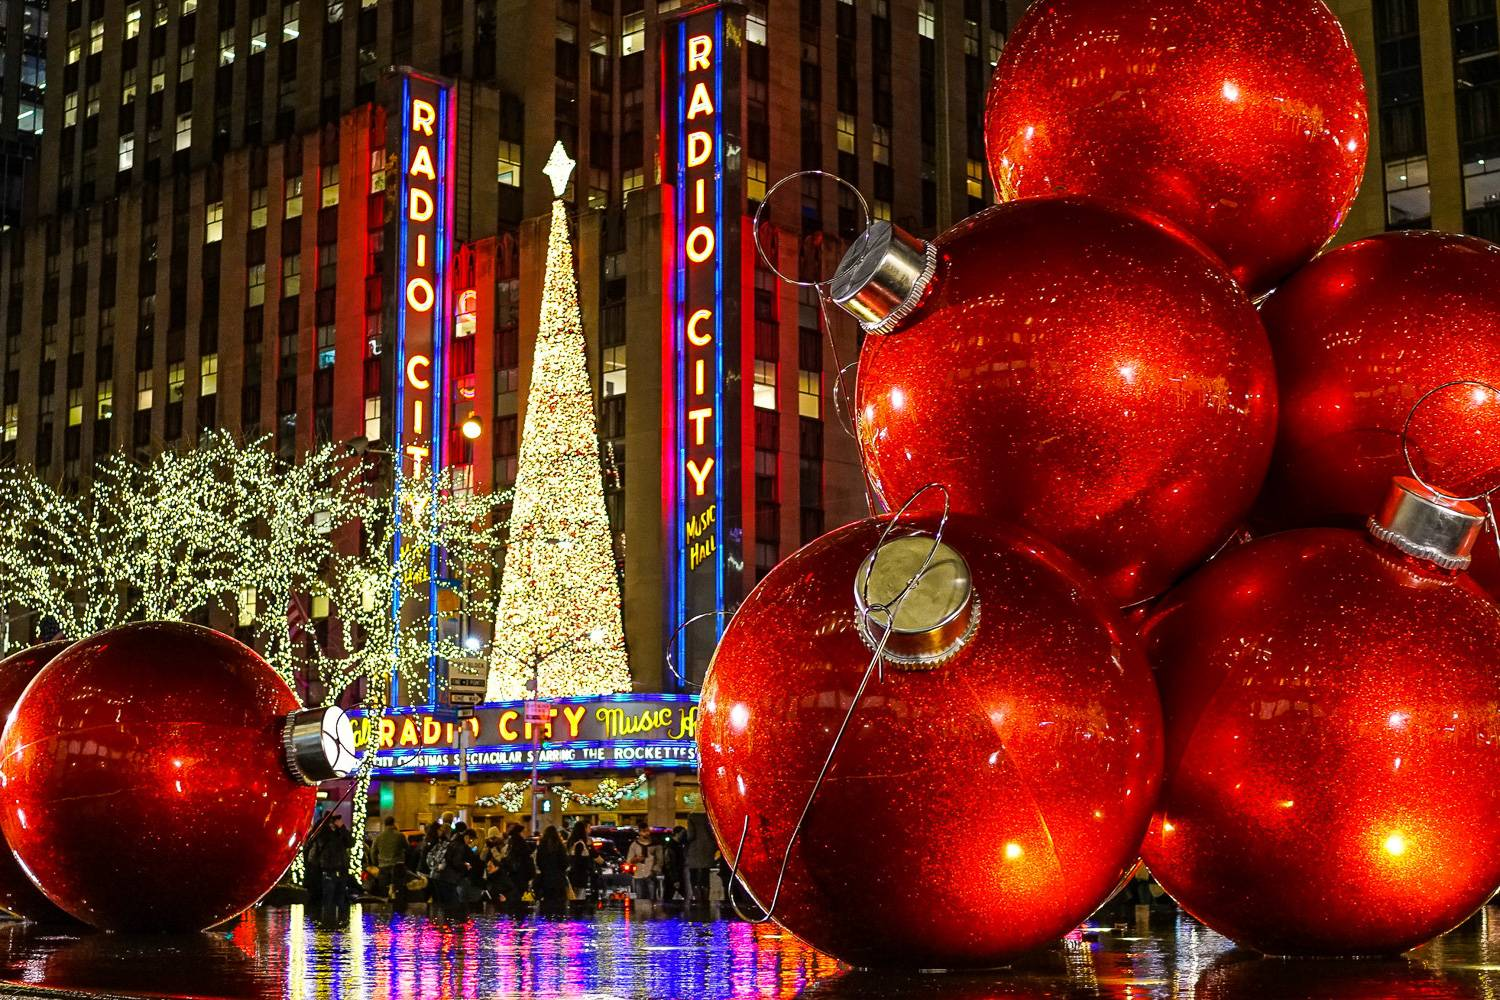 Image of the front of Radio City Music Hall at night with neon lights, Christmas tree over the entrance, trees wrapped in lights and giant red ornaments